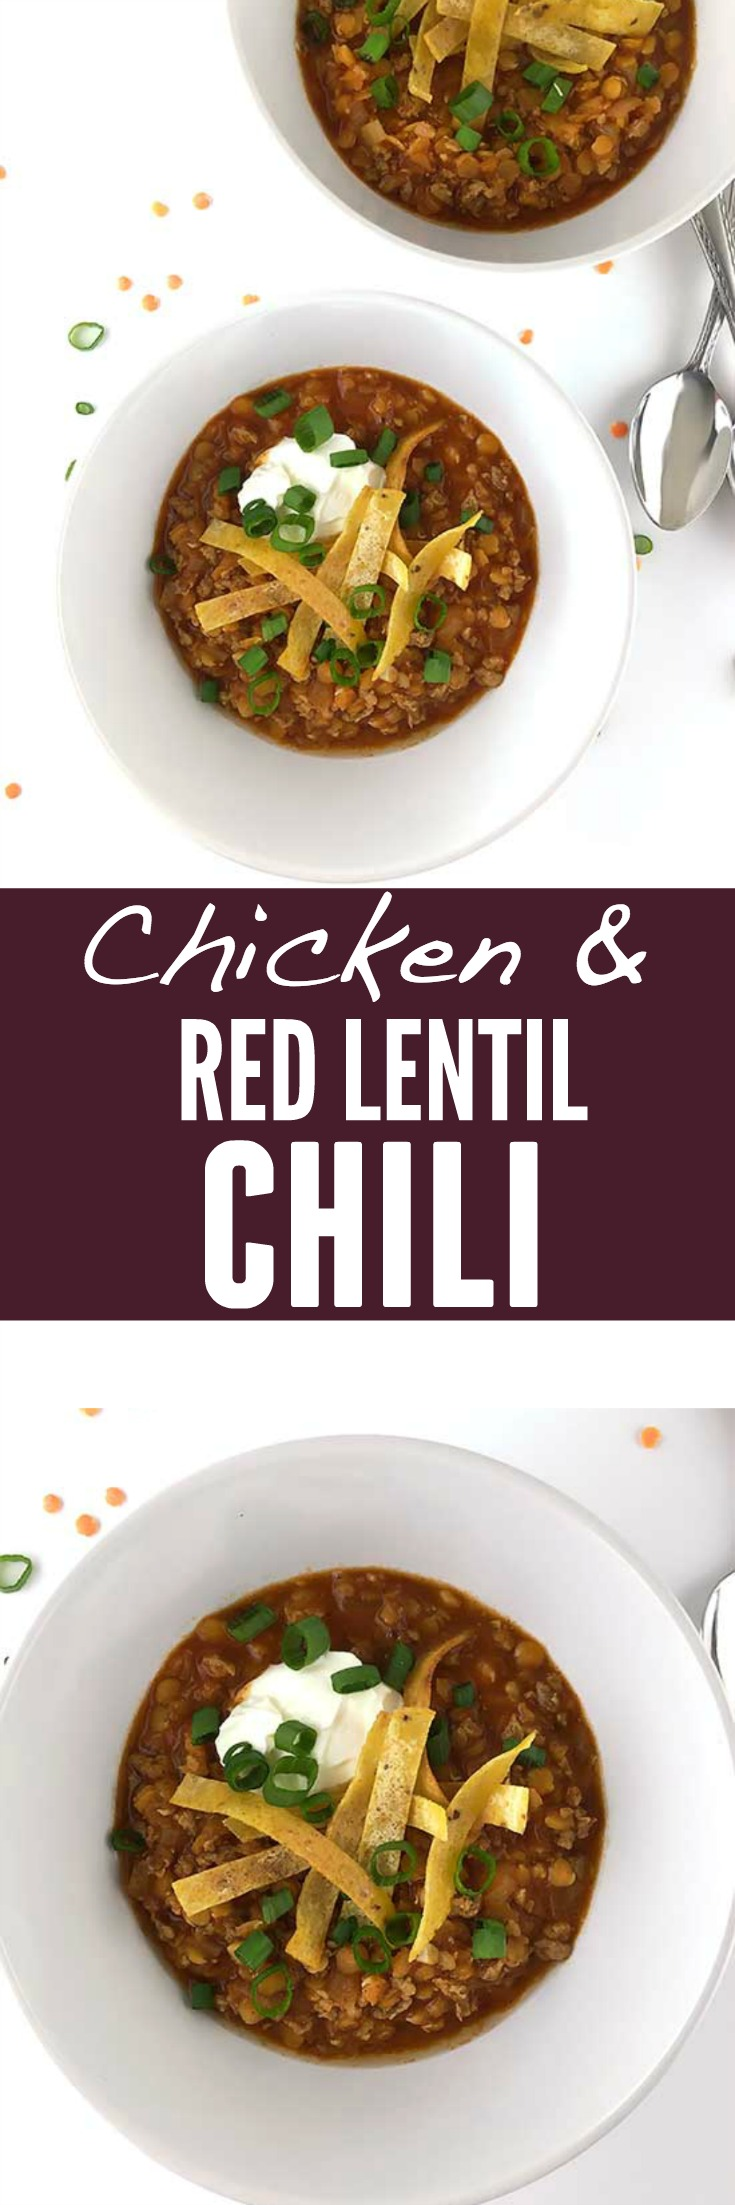 Chicken-Red-Lentil-Chili-Pin